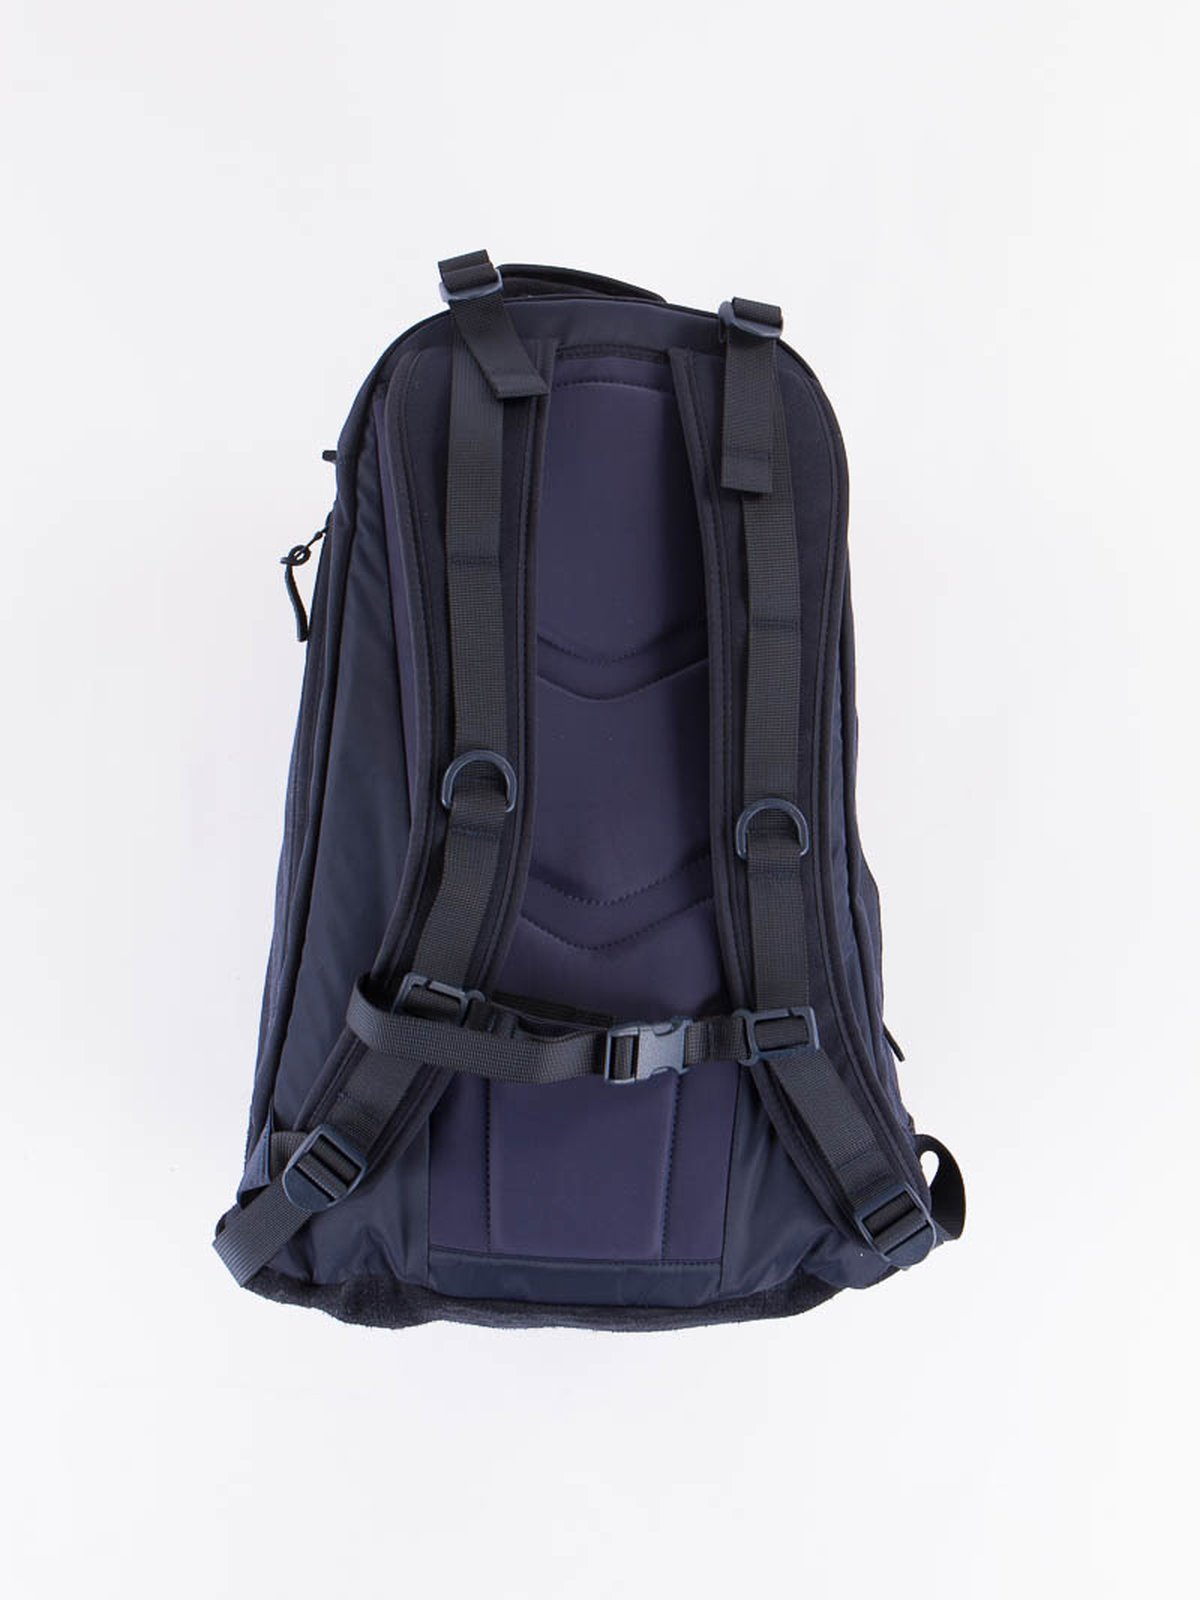 Navy 22L Ballistic Backpack - Image 7